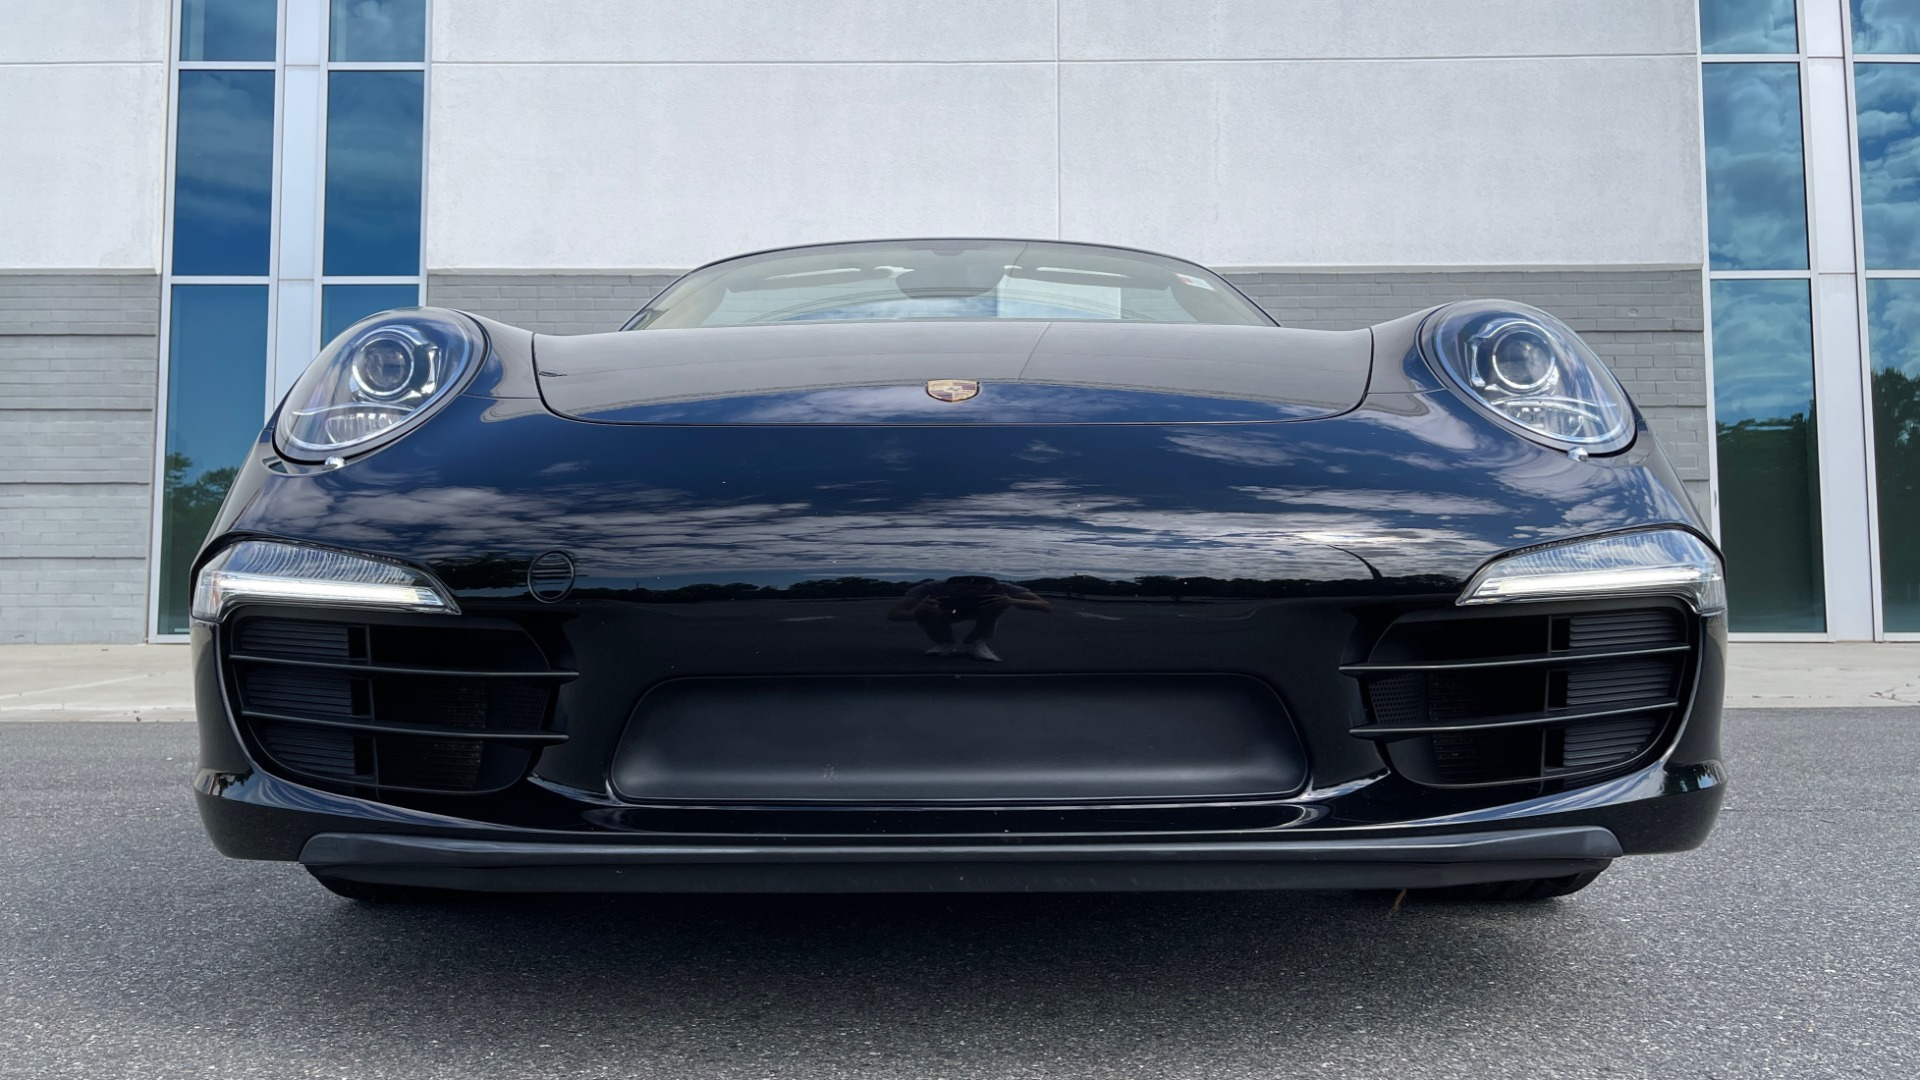 Used 2013 Porsche 911 CARRERA CABRIOLET / PDK / NAV / BOSE / HTD STS / PDLS for sale Sold at Formula Imports in Charlotte NC 28227 30